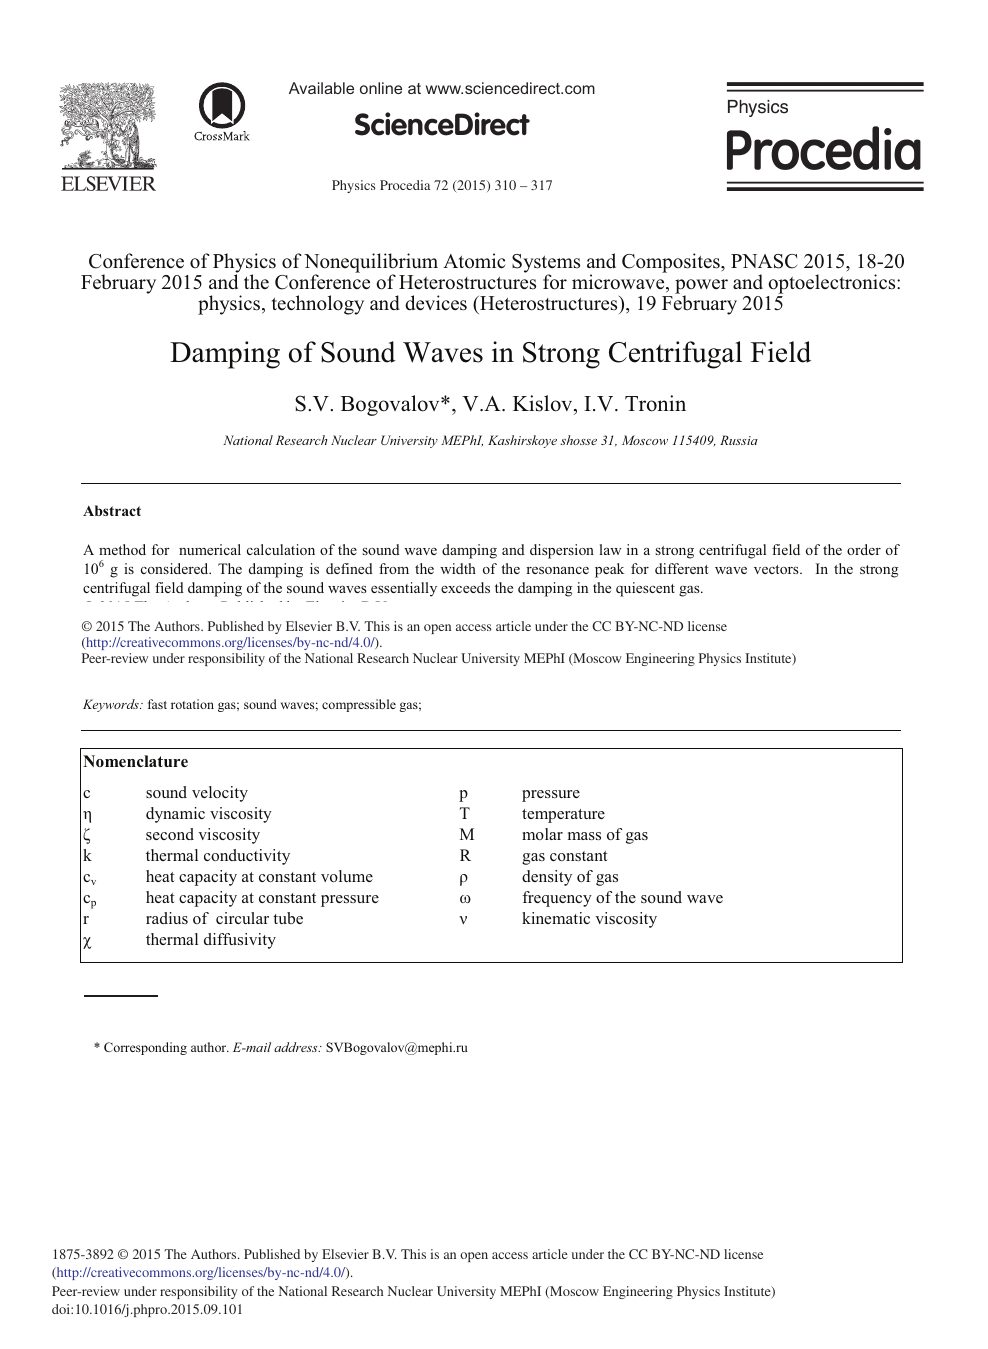 Damping of Sound Waves in Strong Centrifugal Field – topic